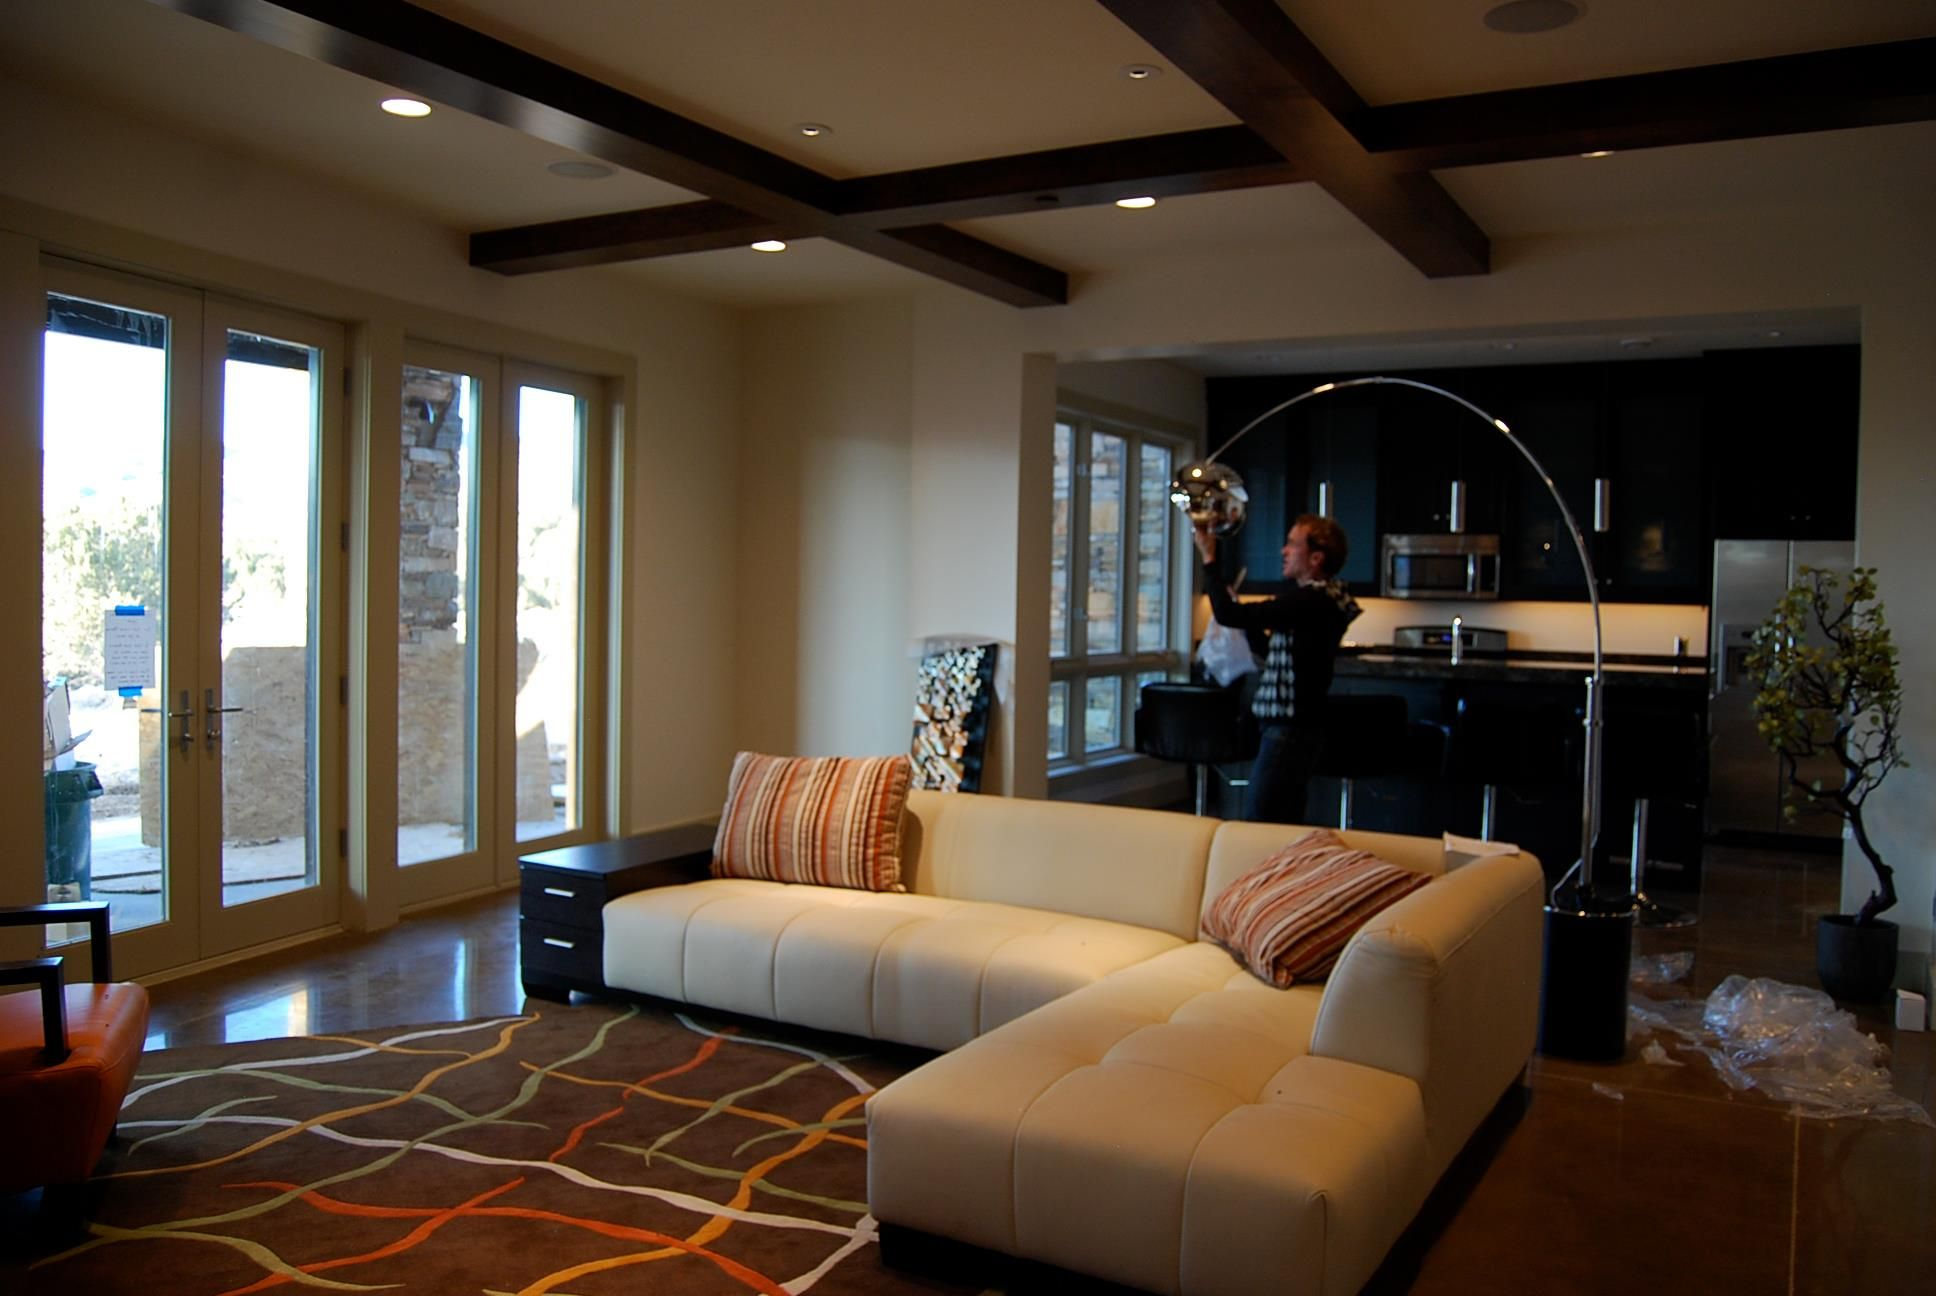 Southern utah architecture design facebookpages